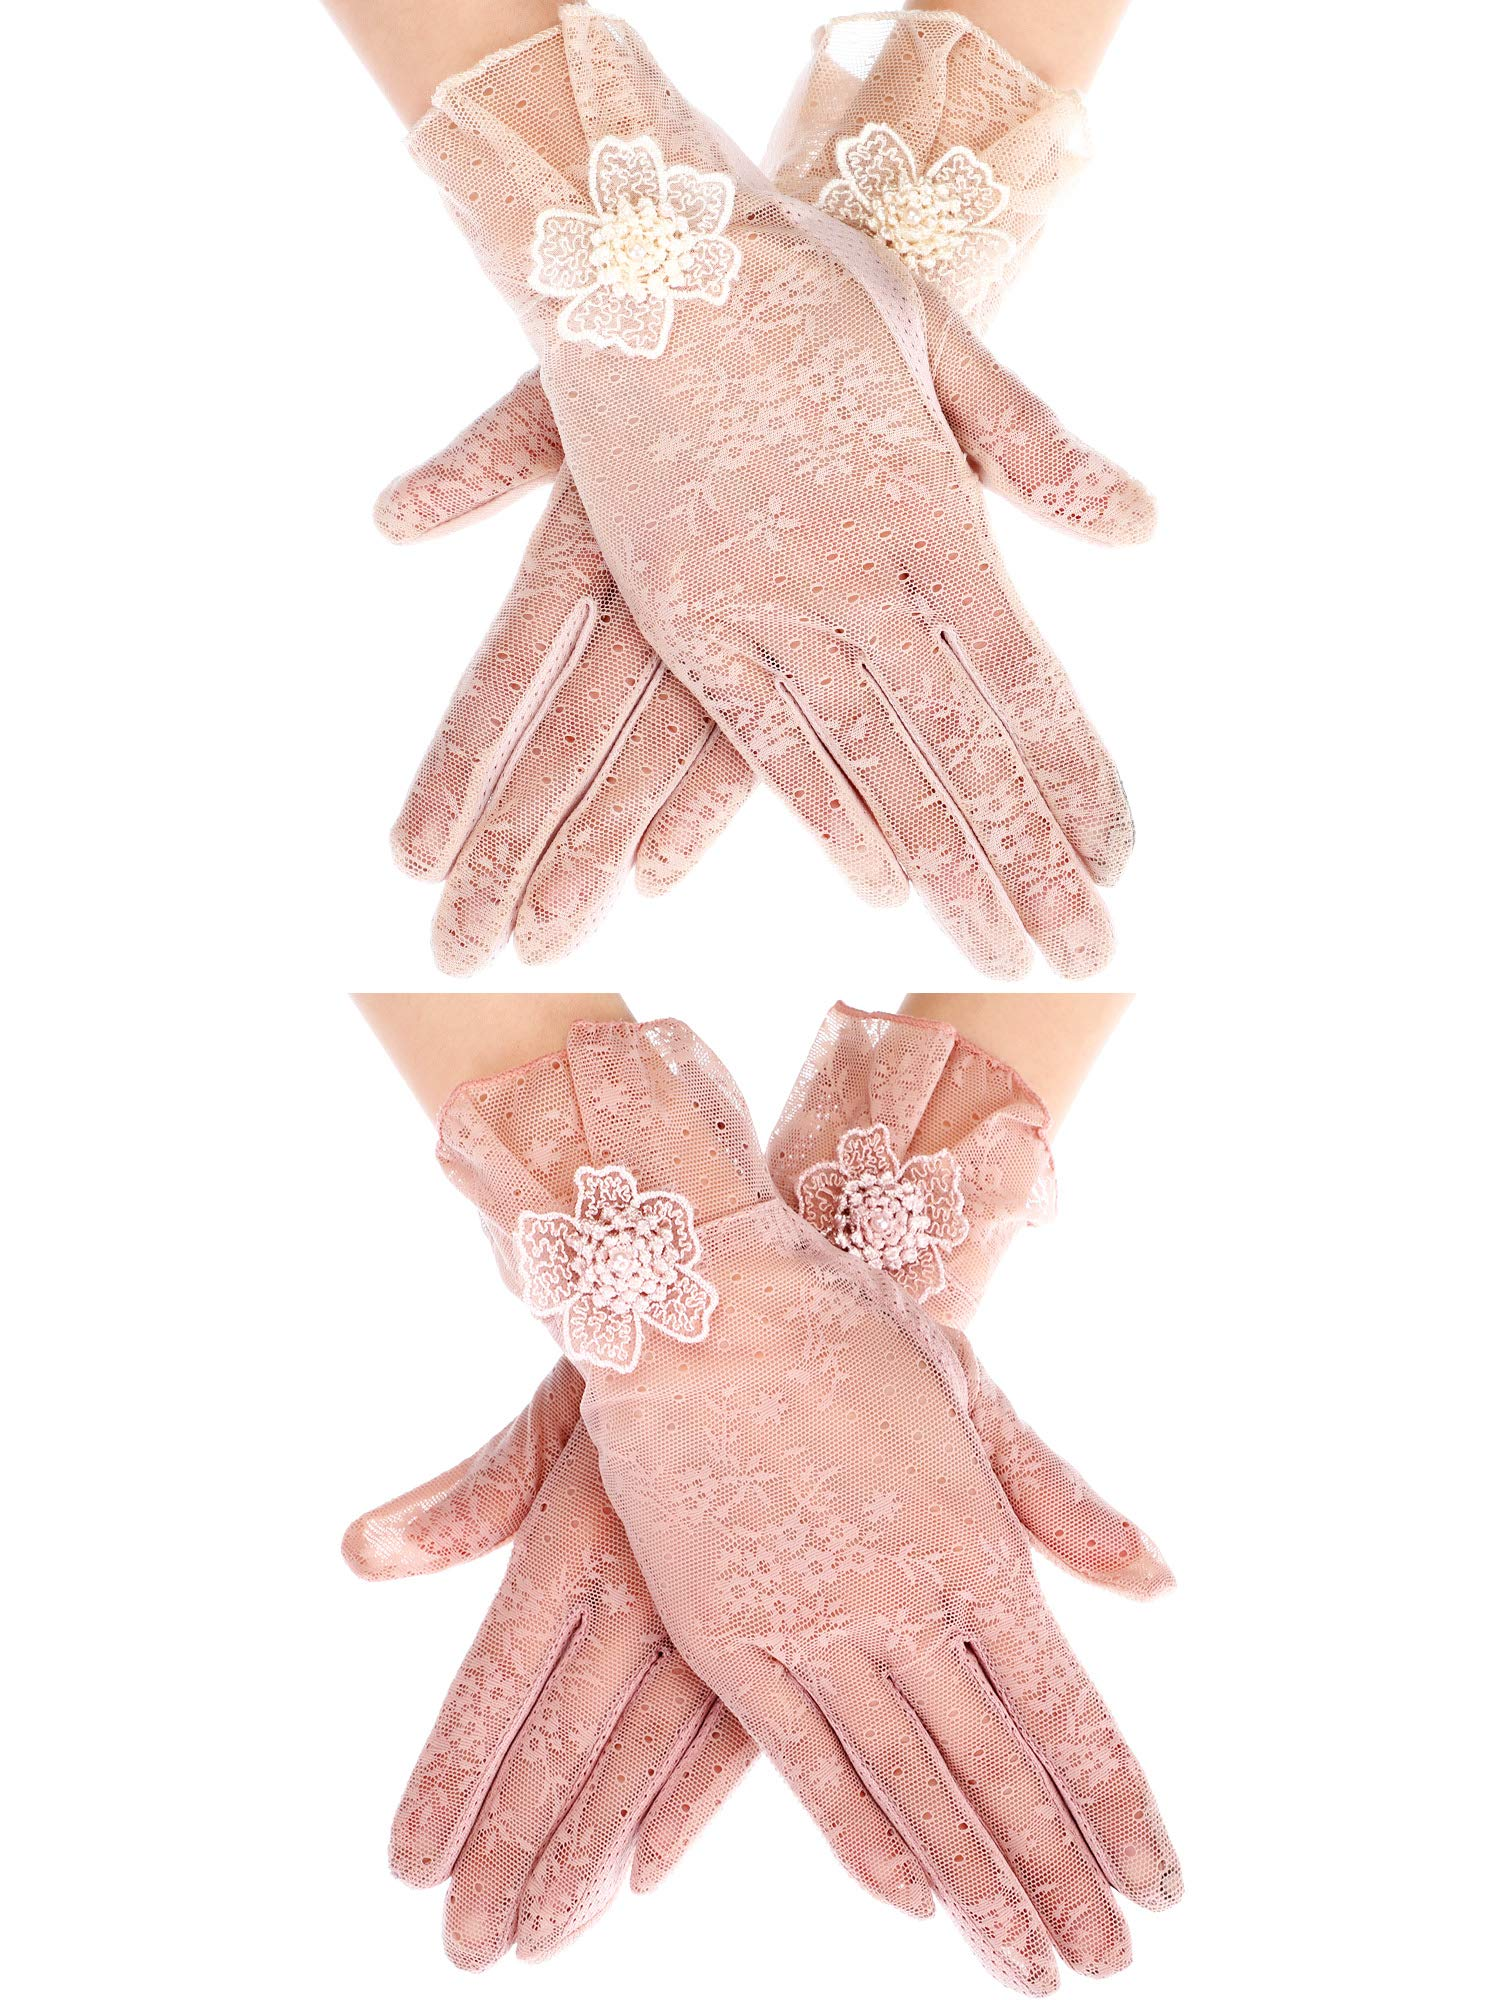 Norme 2 Pairs Women's Lace Flower Gloves Summer Thin Driving Gloves Sunblock Gloves Wedding Dress Gloves, Beige and Pink